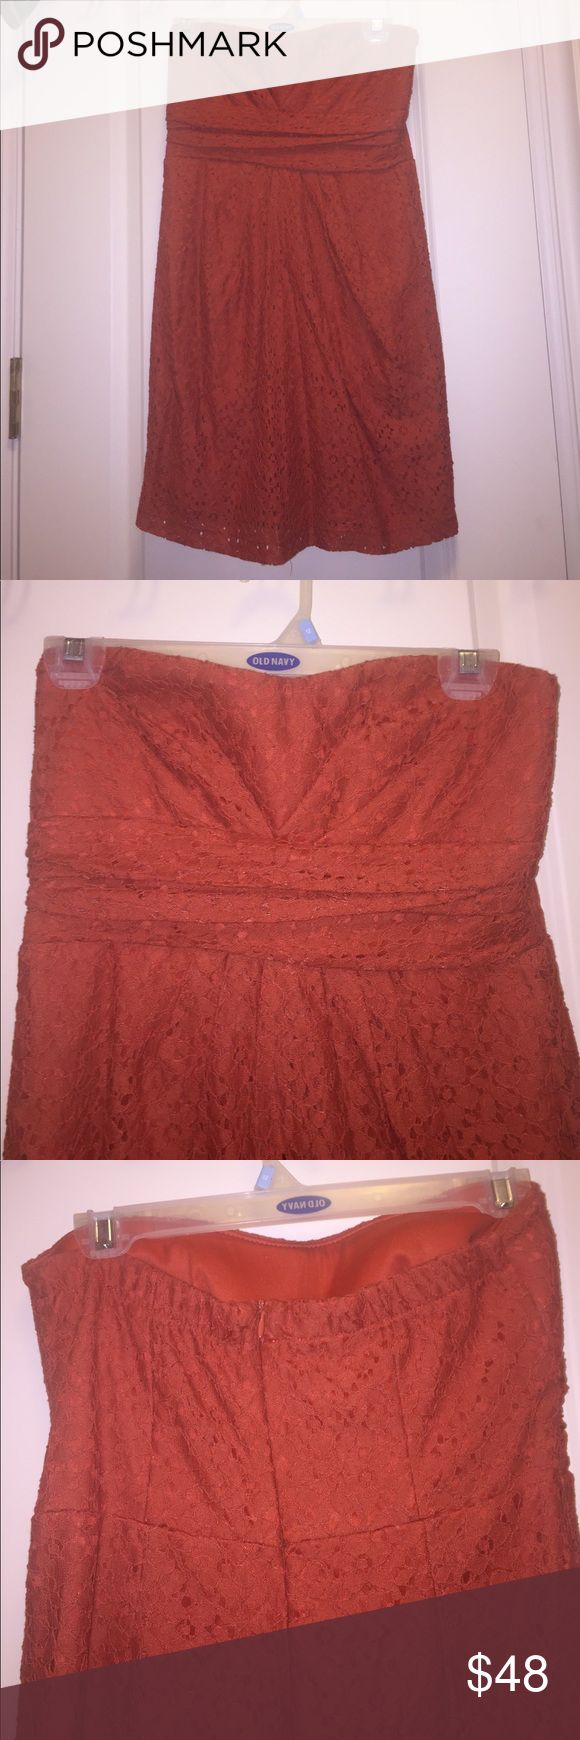 Orange Lace Dress Beautiful orange Strapless Lace Dress with padding in the chest area (no need for a bra!). Zipper in the back. From Francesca's. Perfect for UT Austin games, Clemson or Auburn! Free People Dresses Strapless